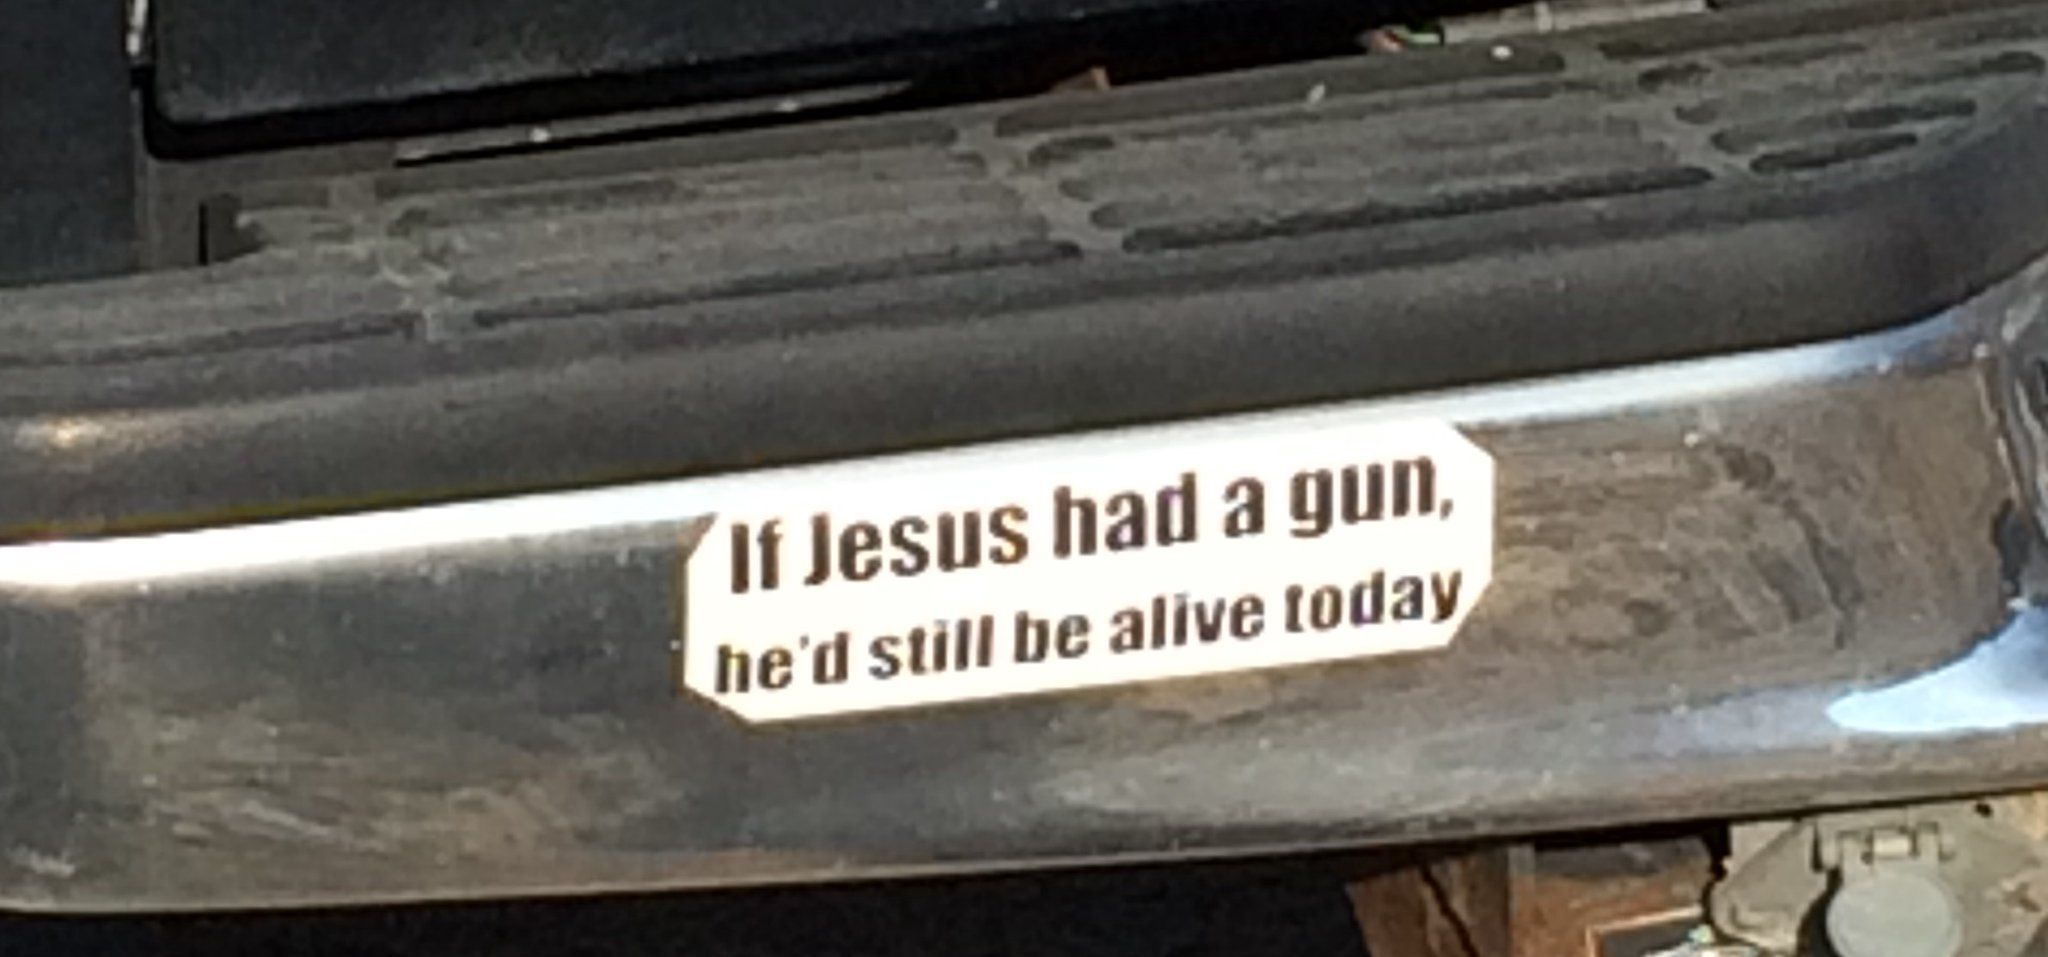 A stupid bumper sticker is a stupid bumper sticker but this message about jesus was just the means to the end of the main point a political argument